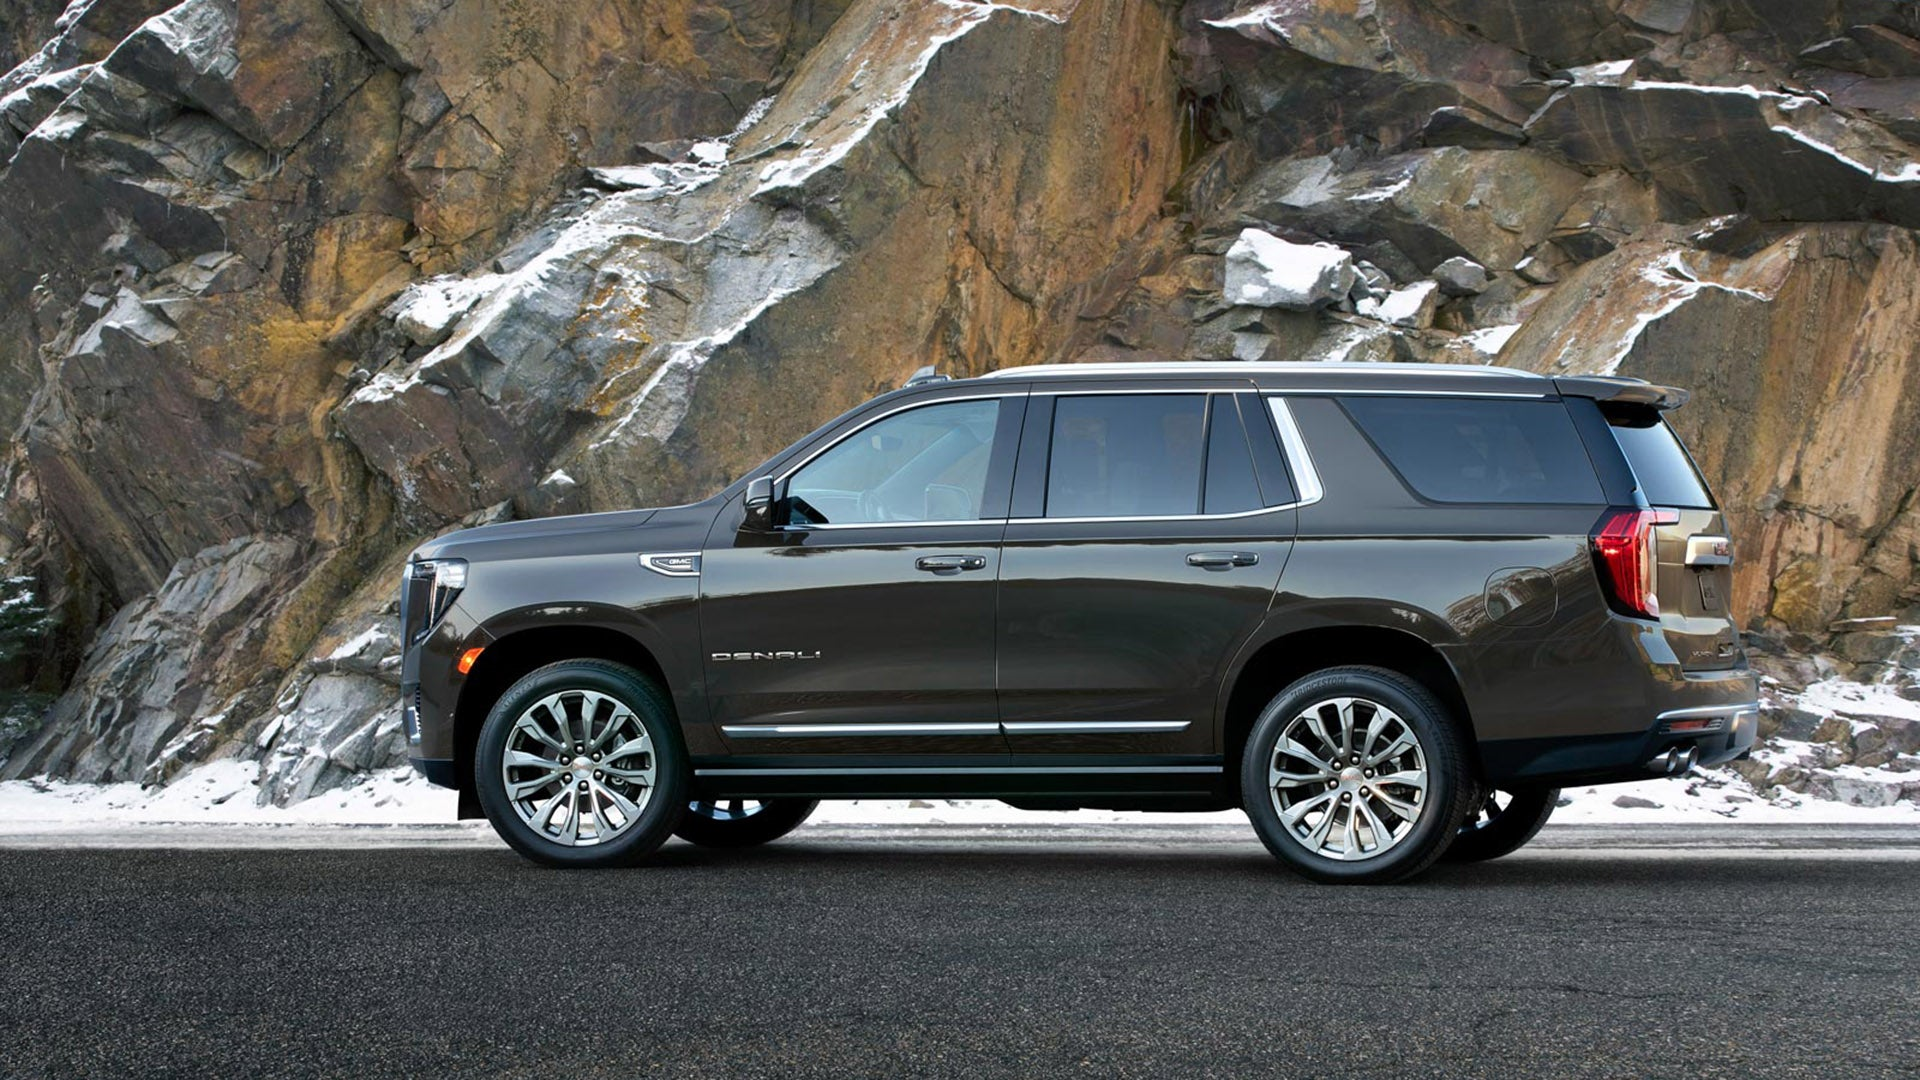 The All New 2021 Gmc Yukon And Yukon Xl Are Here And They Look Pretty Sharp